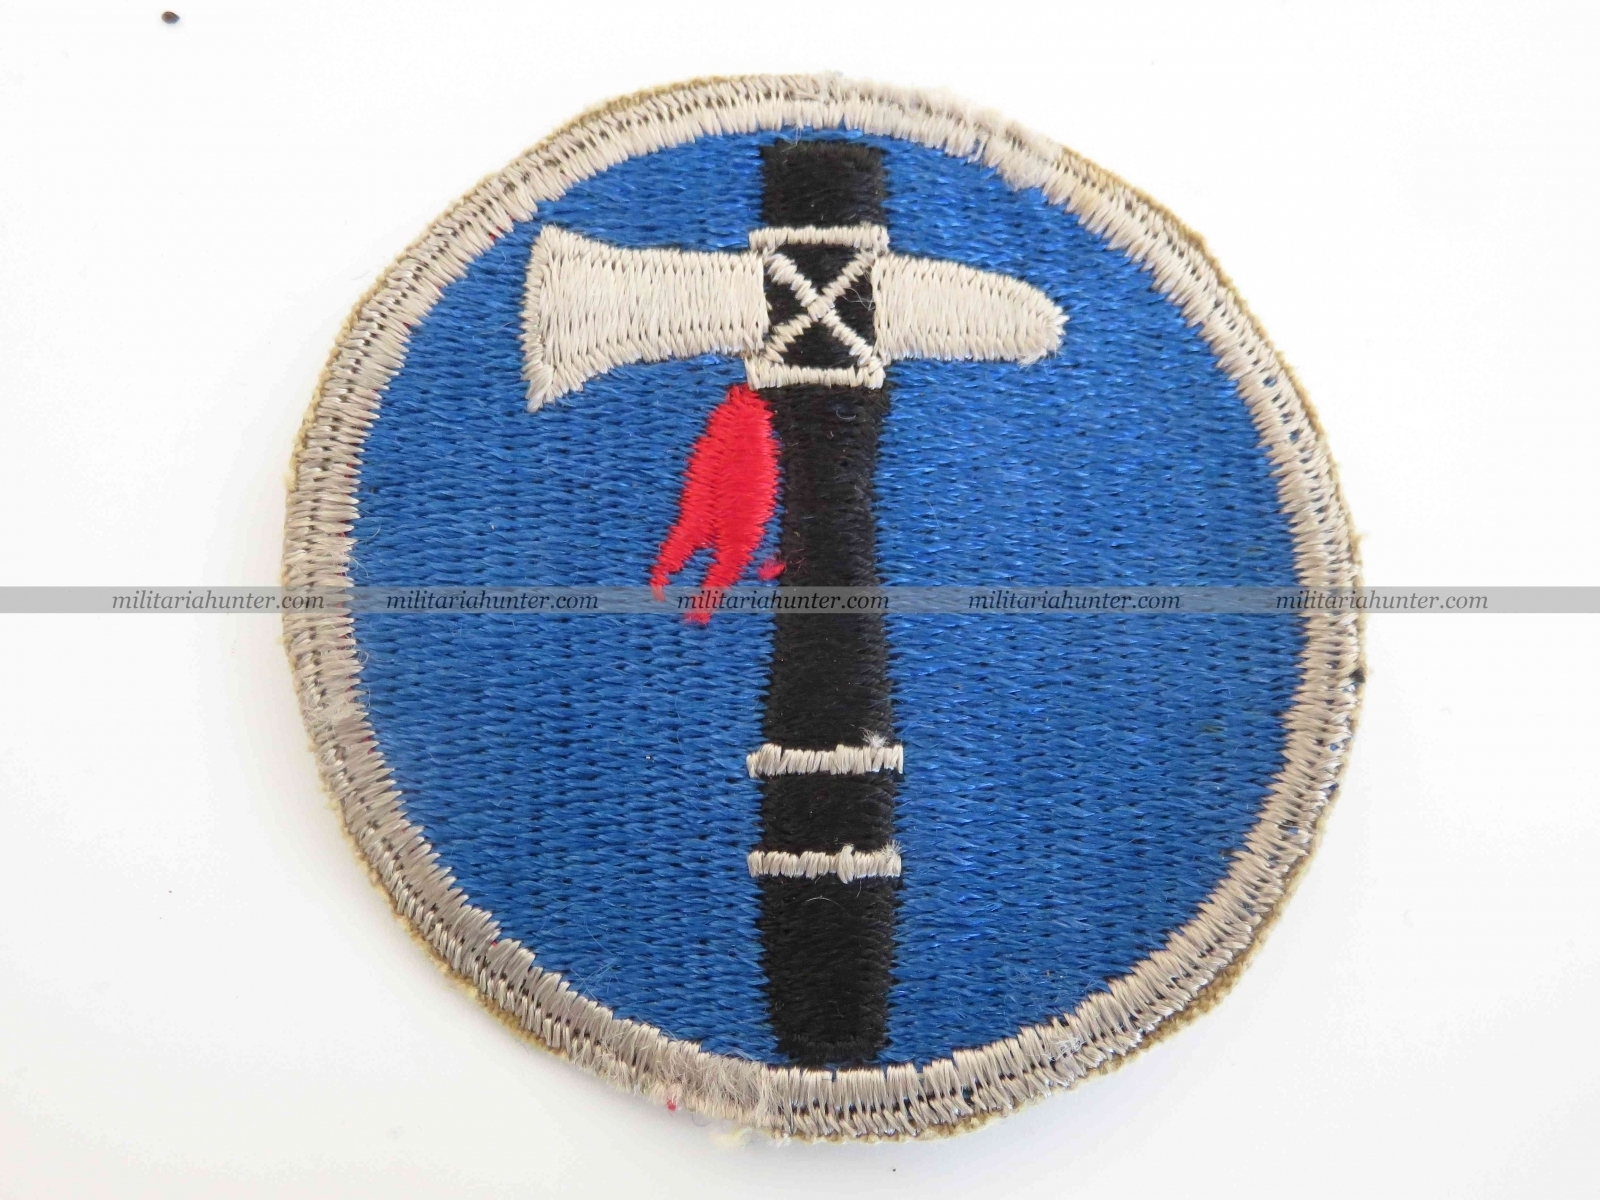 militaria : US Army WW2 XIX Corps patch